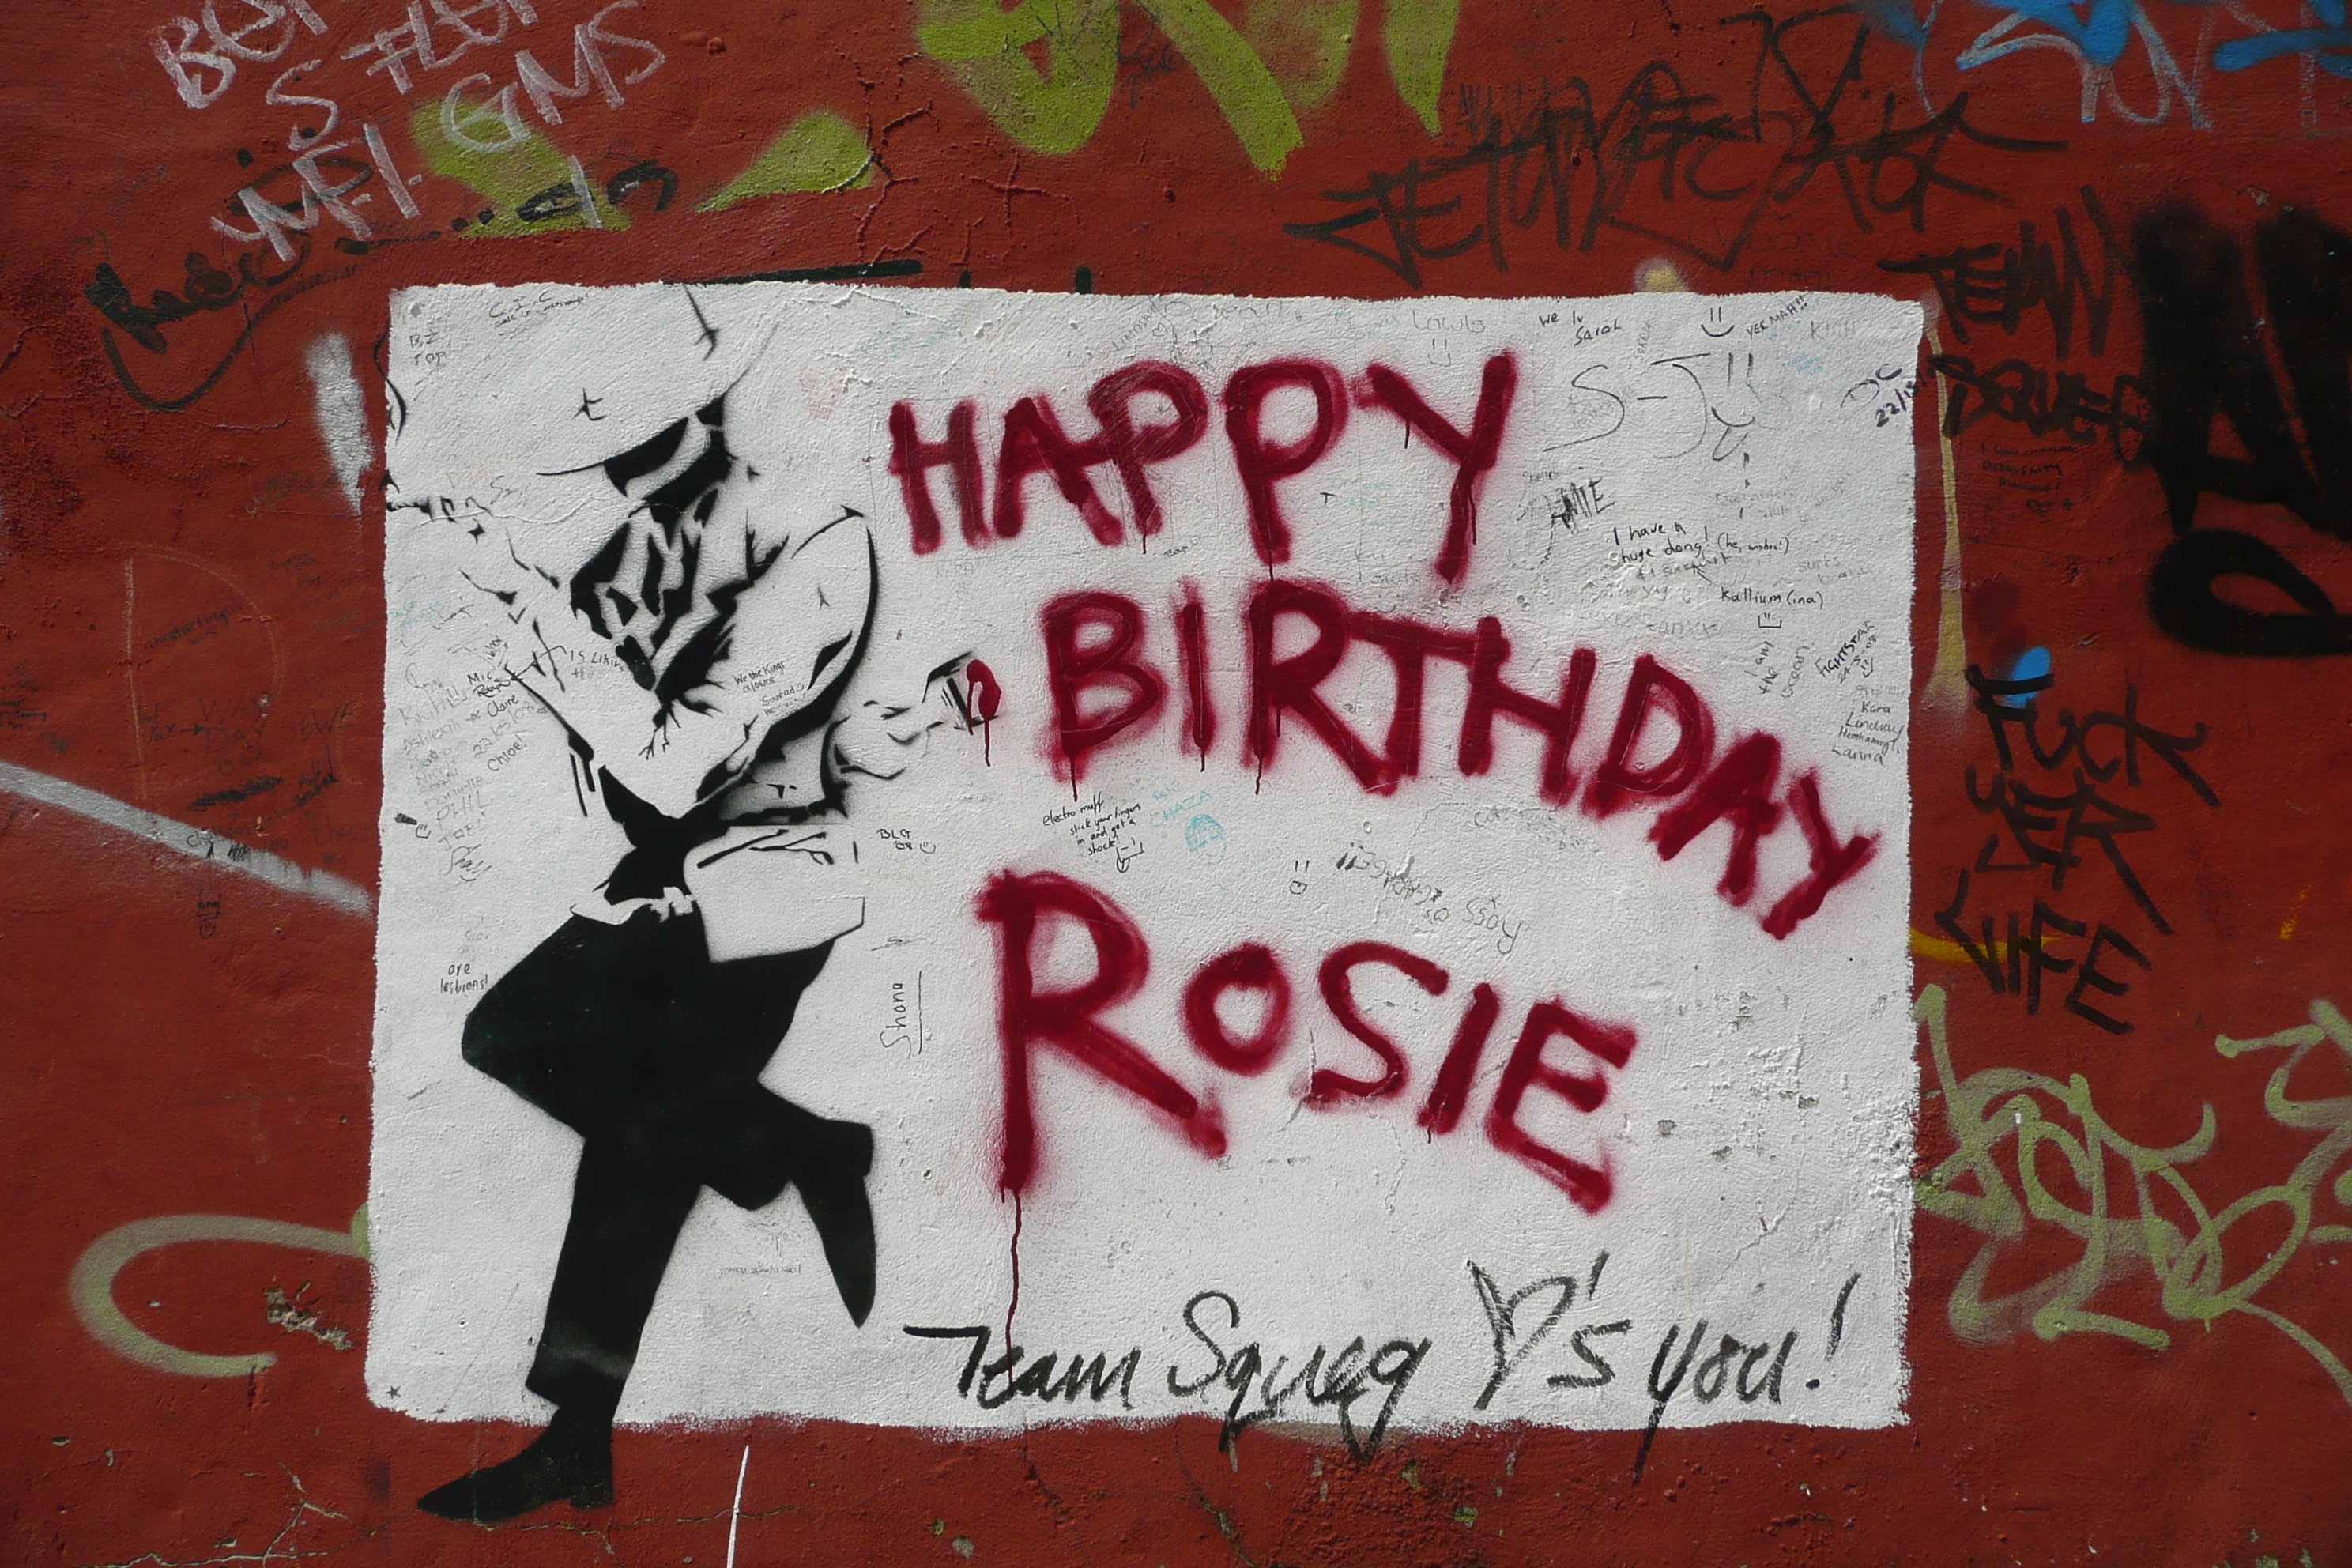 Wallpaper Graffiti, happy birthday, Rosie